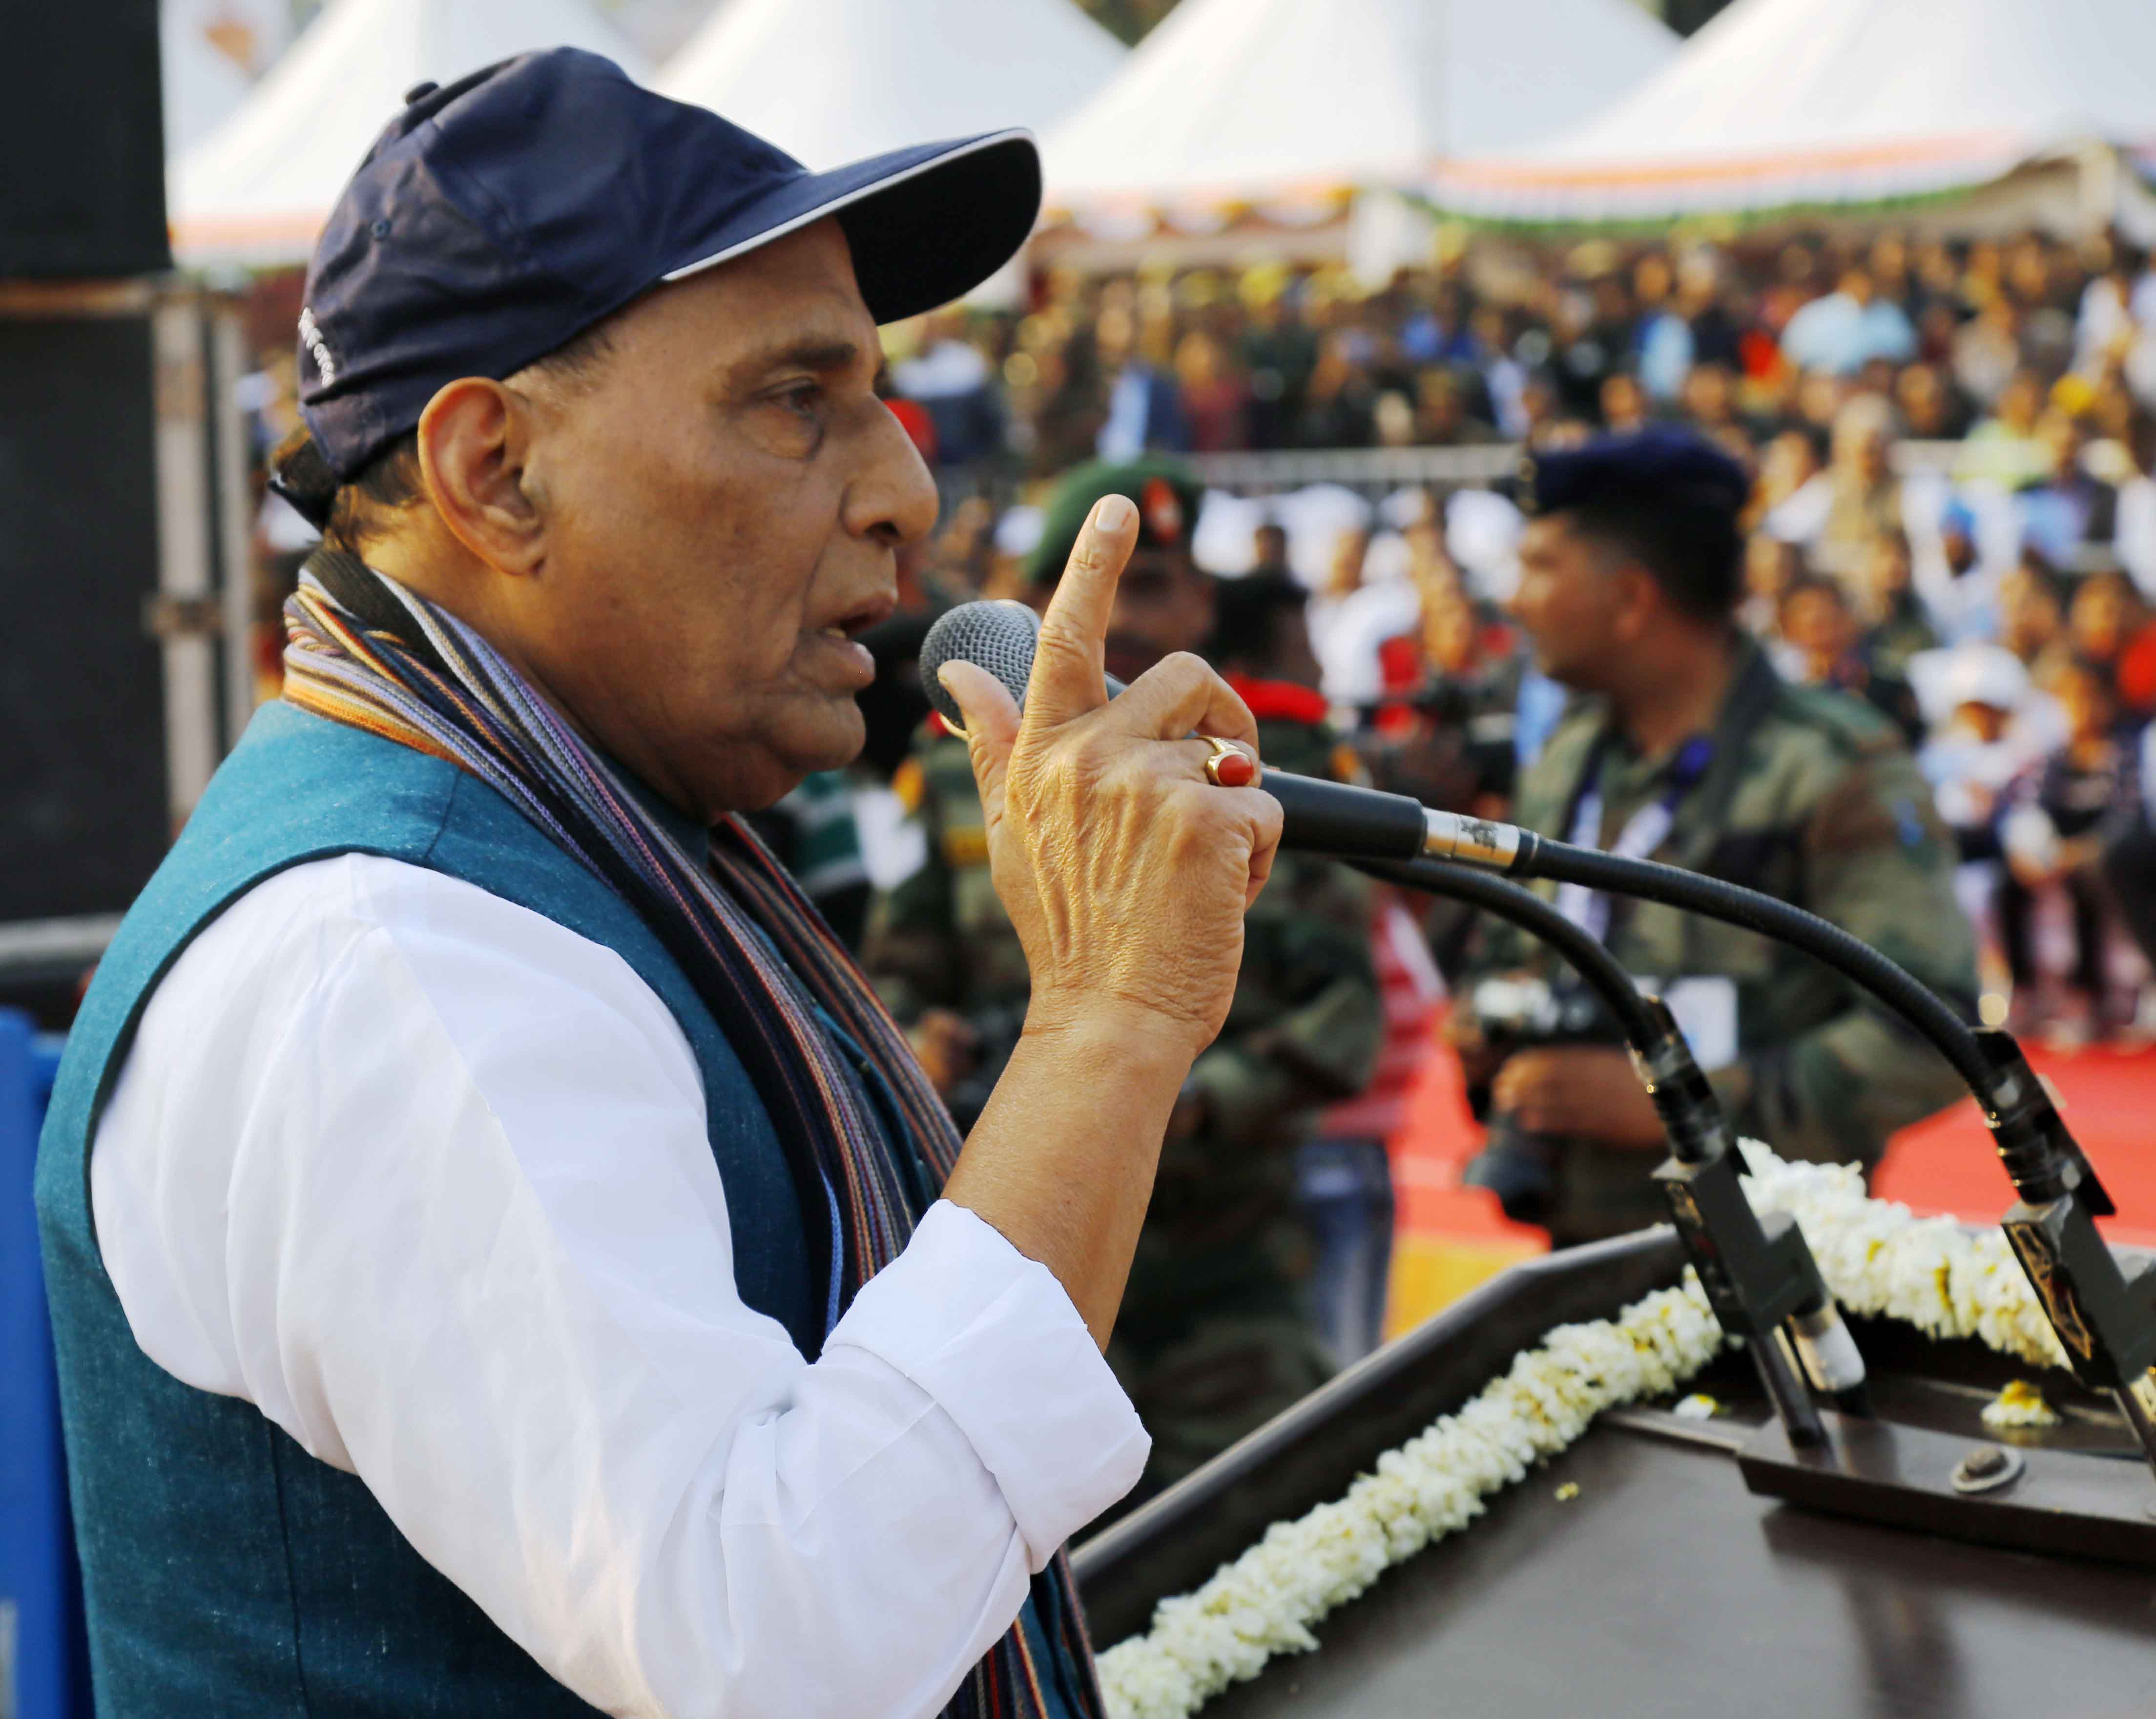 Defence Minister Rajnath Singh appeals for making 'Janta Curfew' a huge success